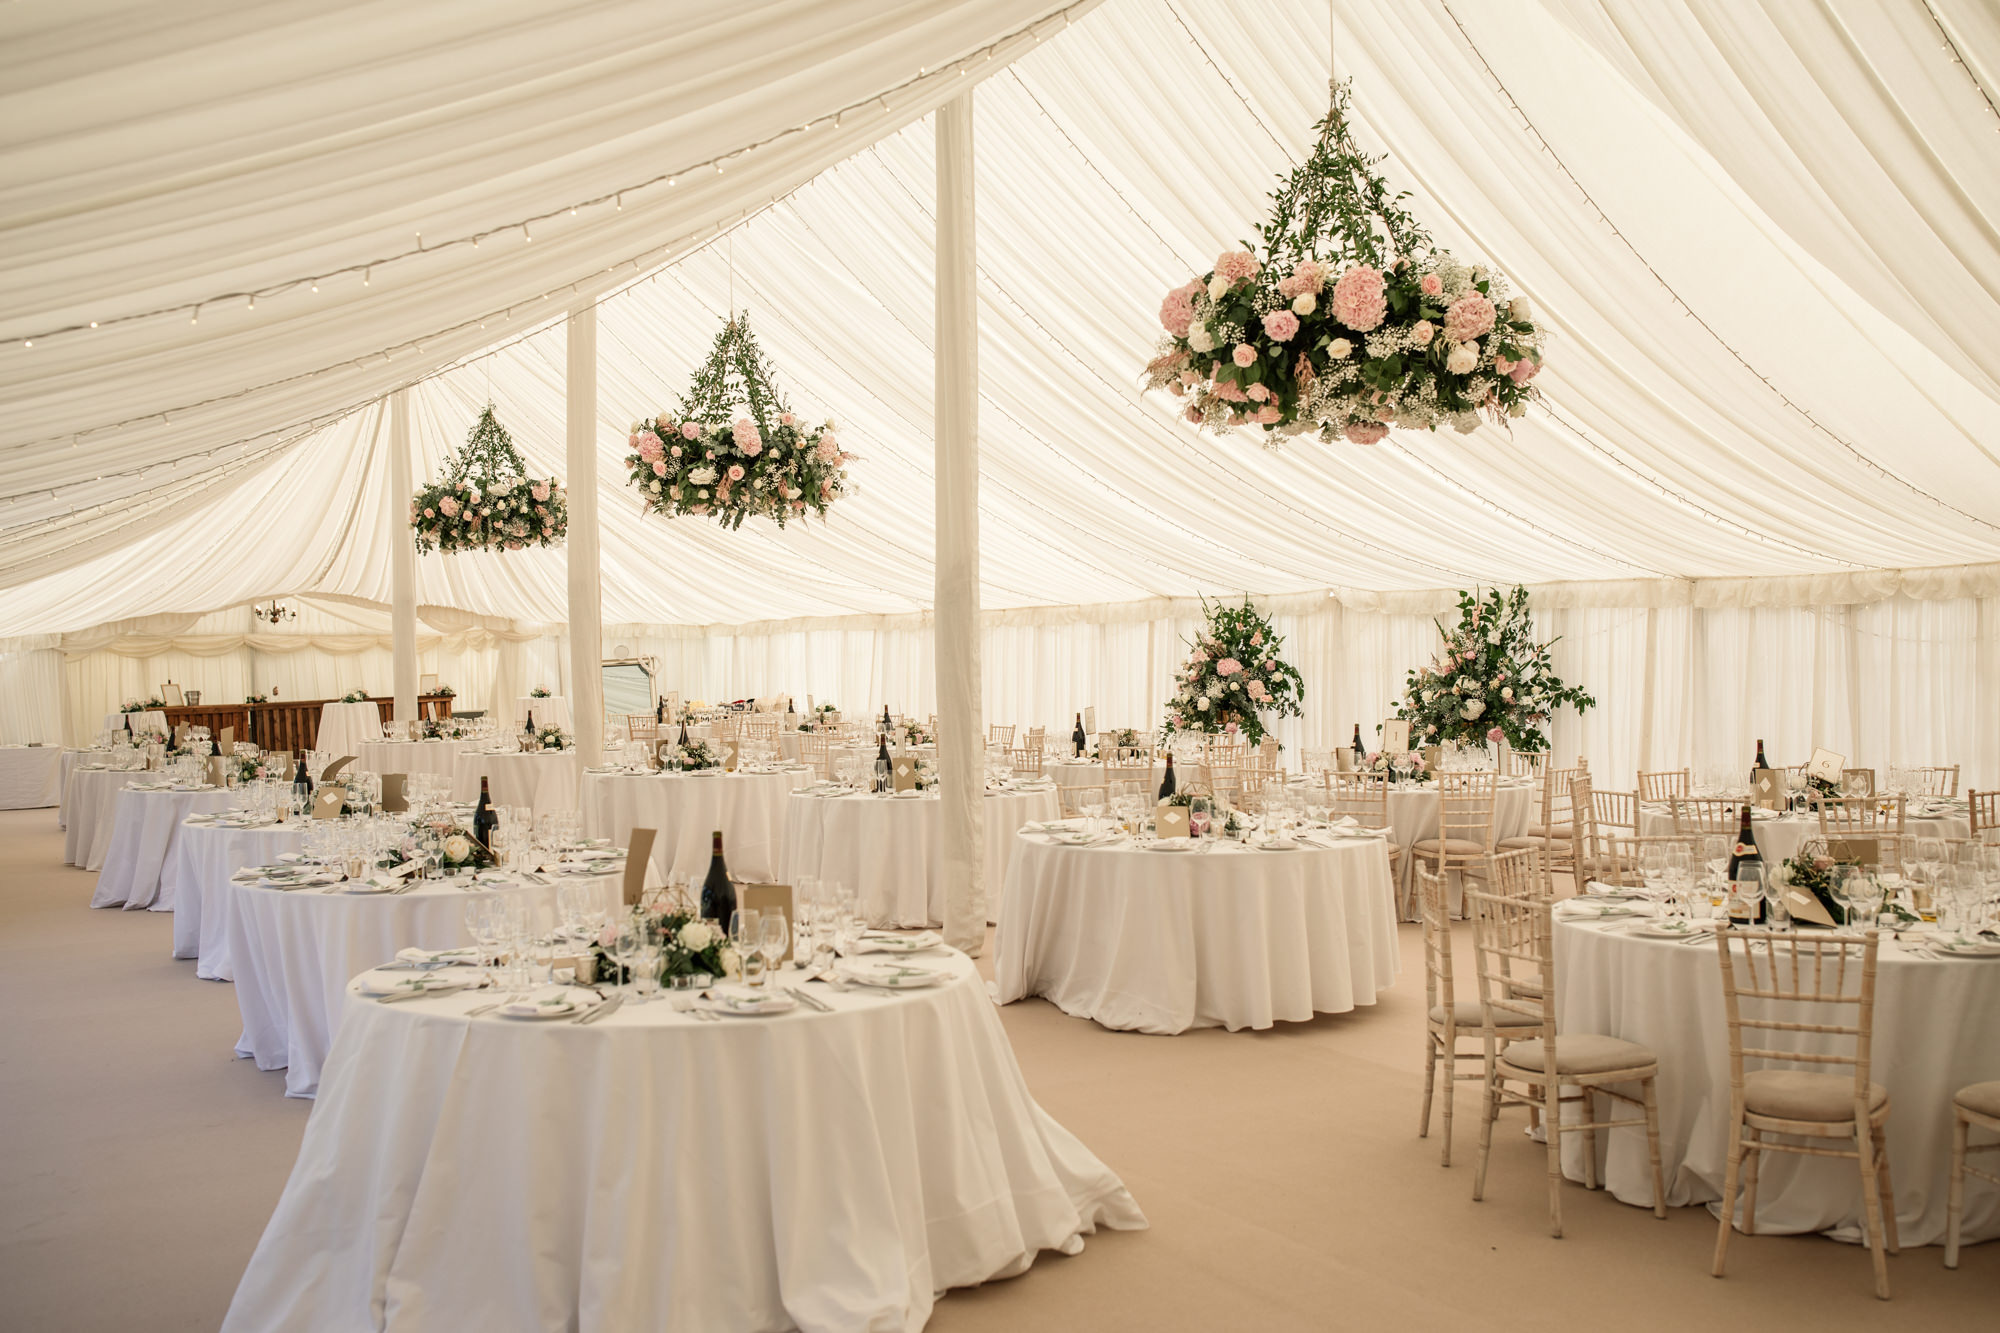 Relaxed Back Garden Marquee Wedding in the Hertfordshire Countryside – Emma & Simon